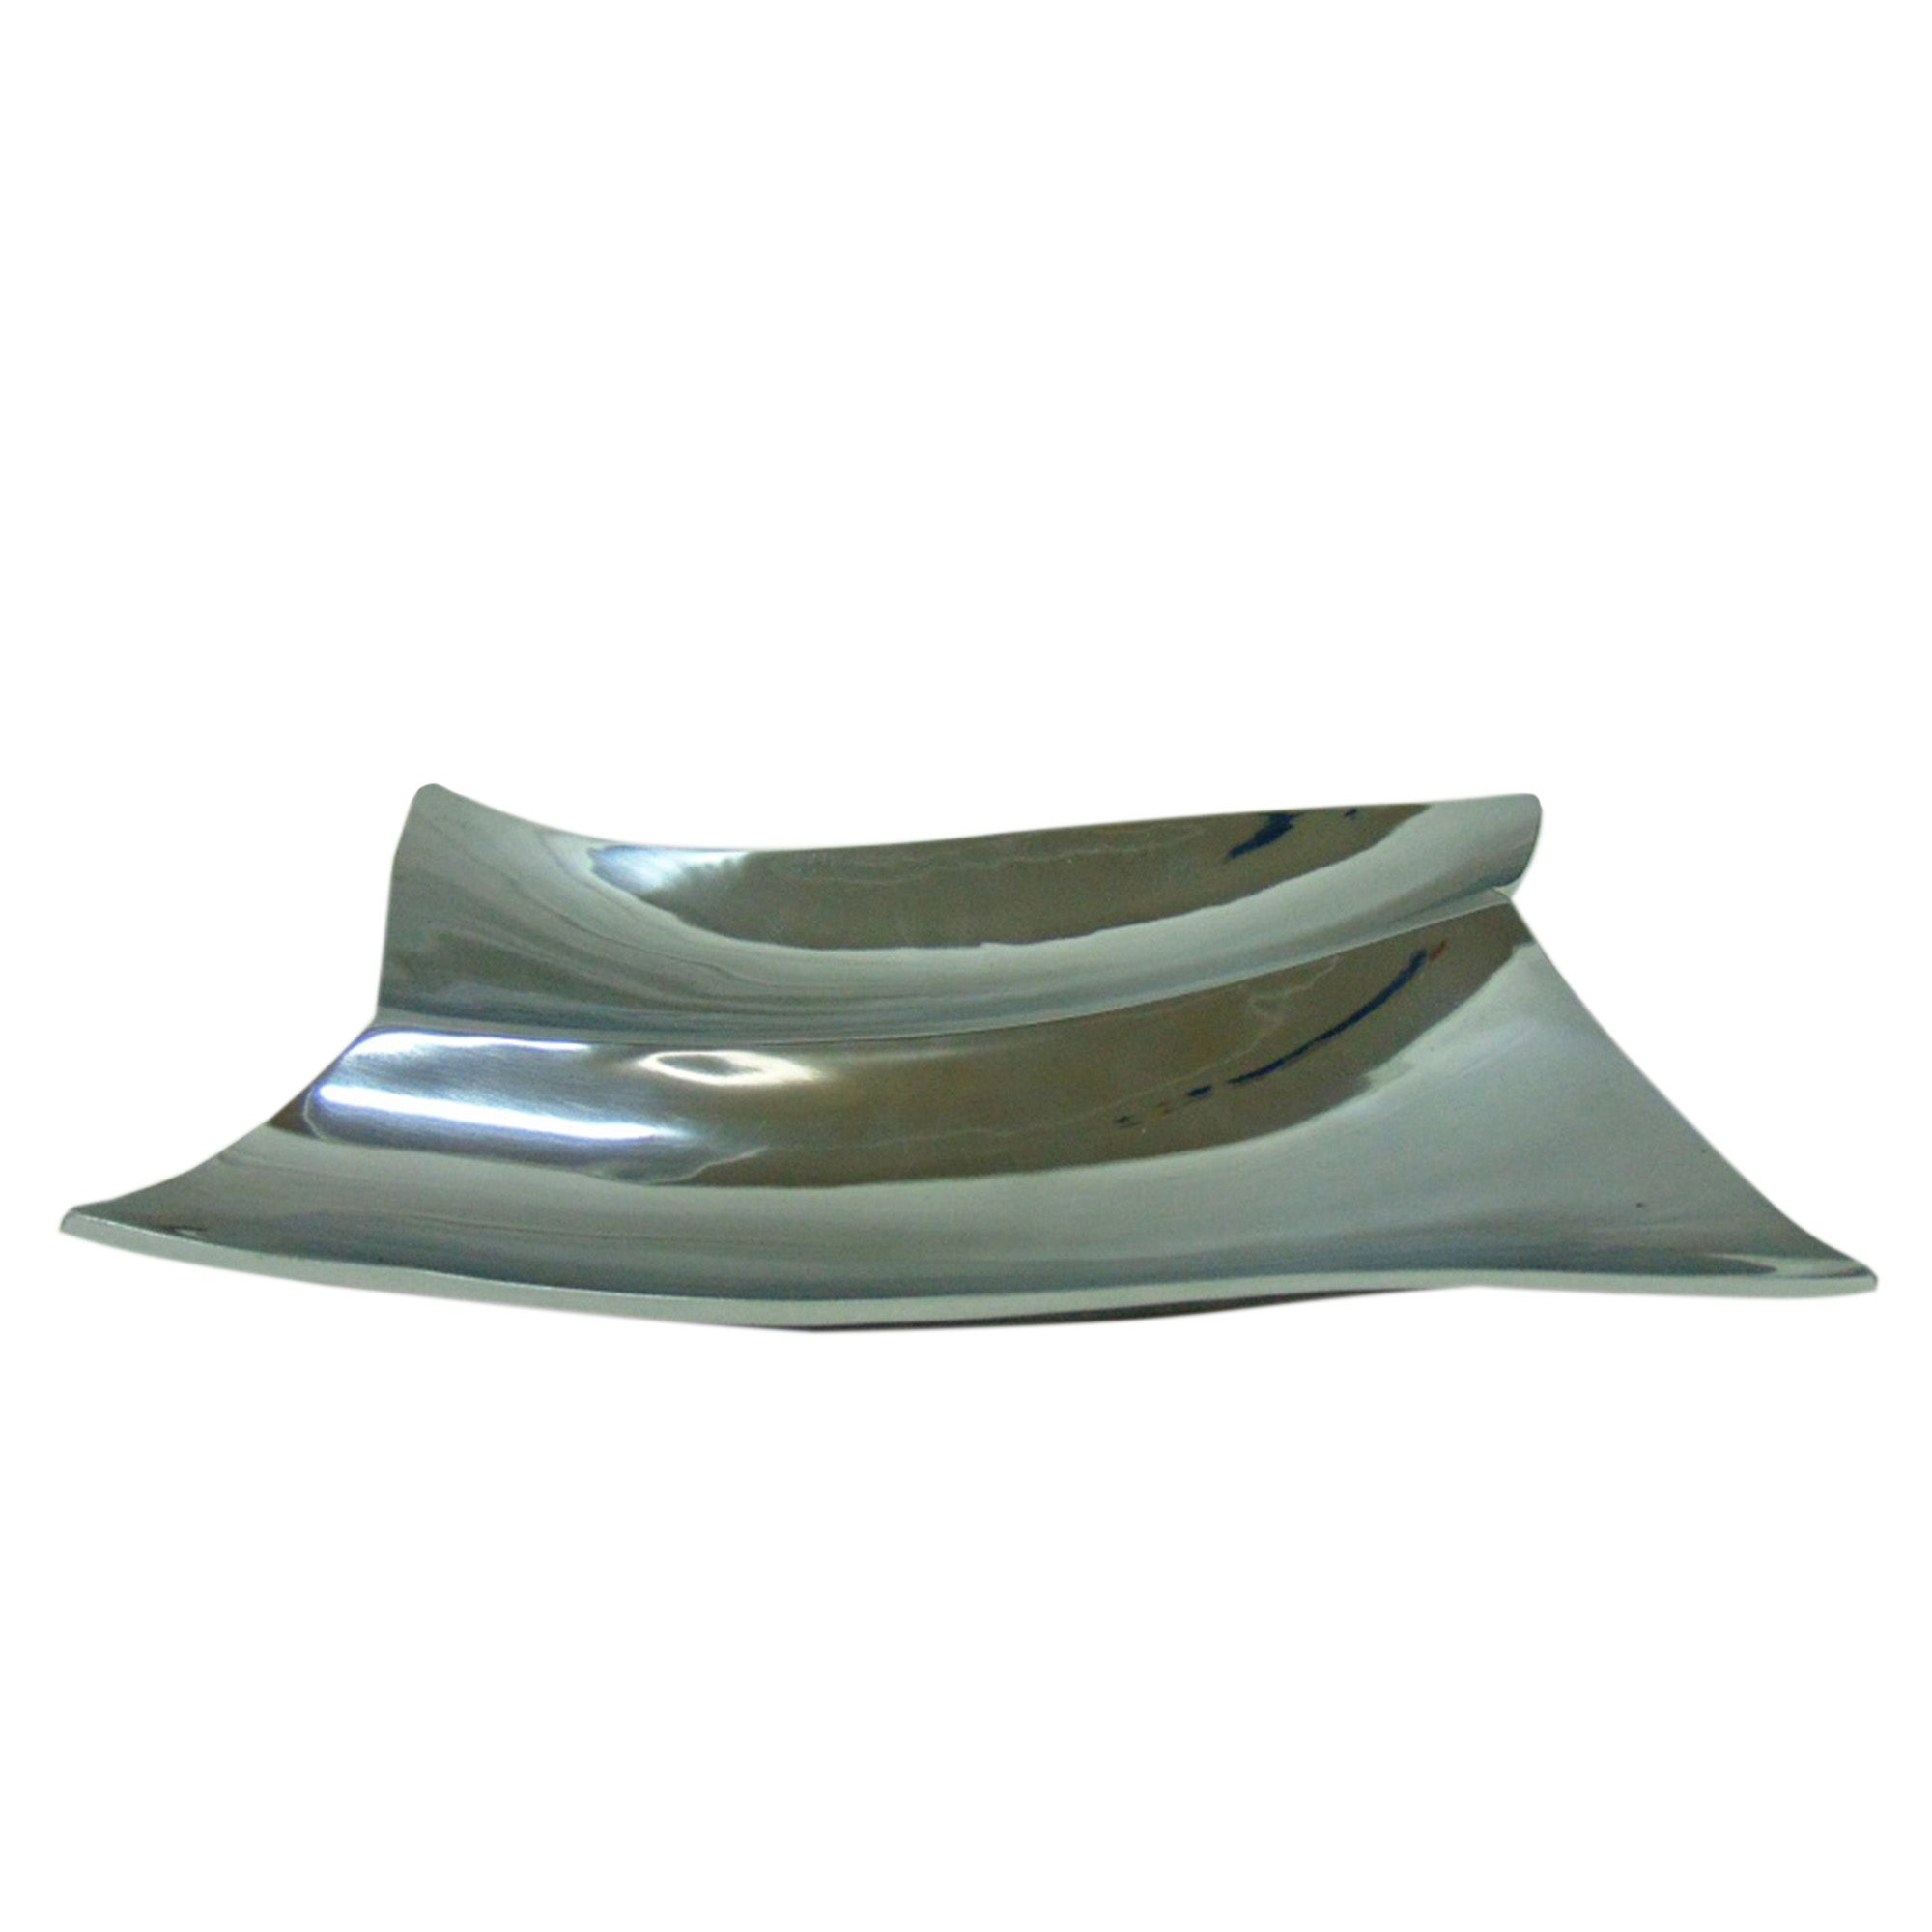 Image of 5A Fifth Avenue Aluminium Platter Silver